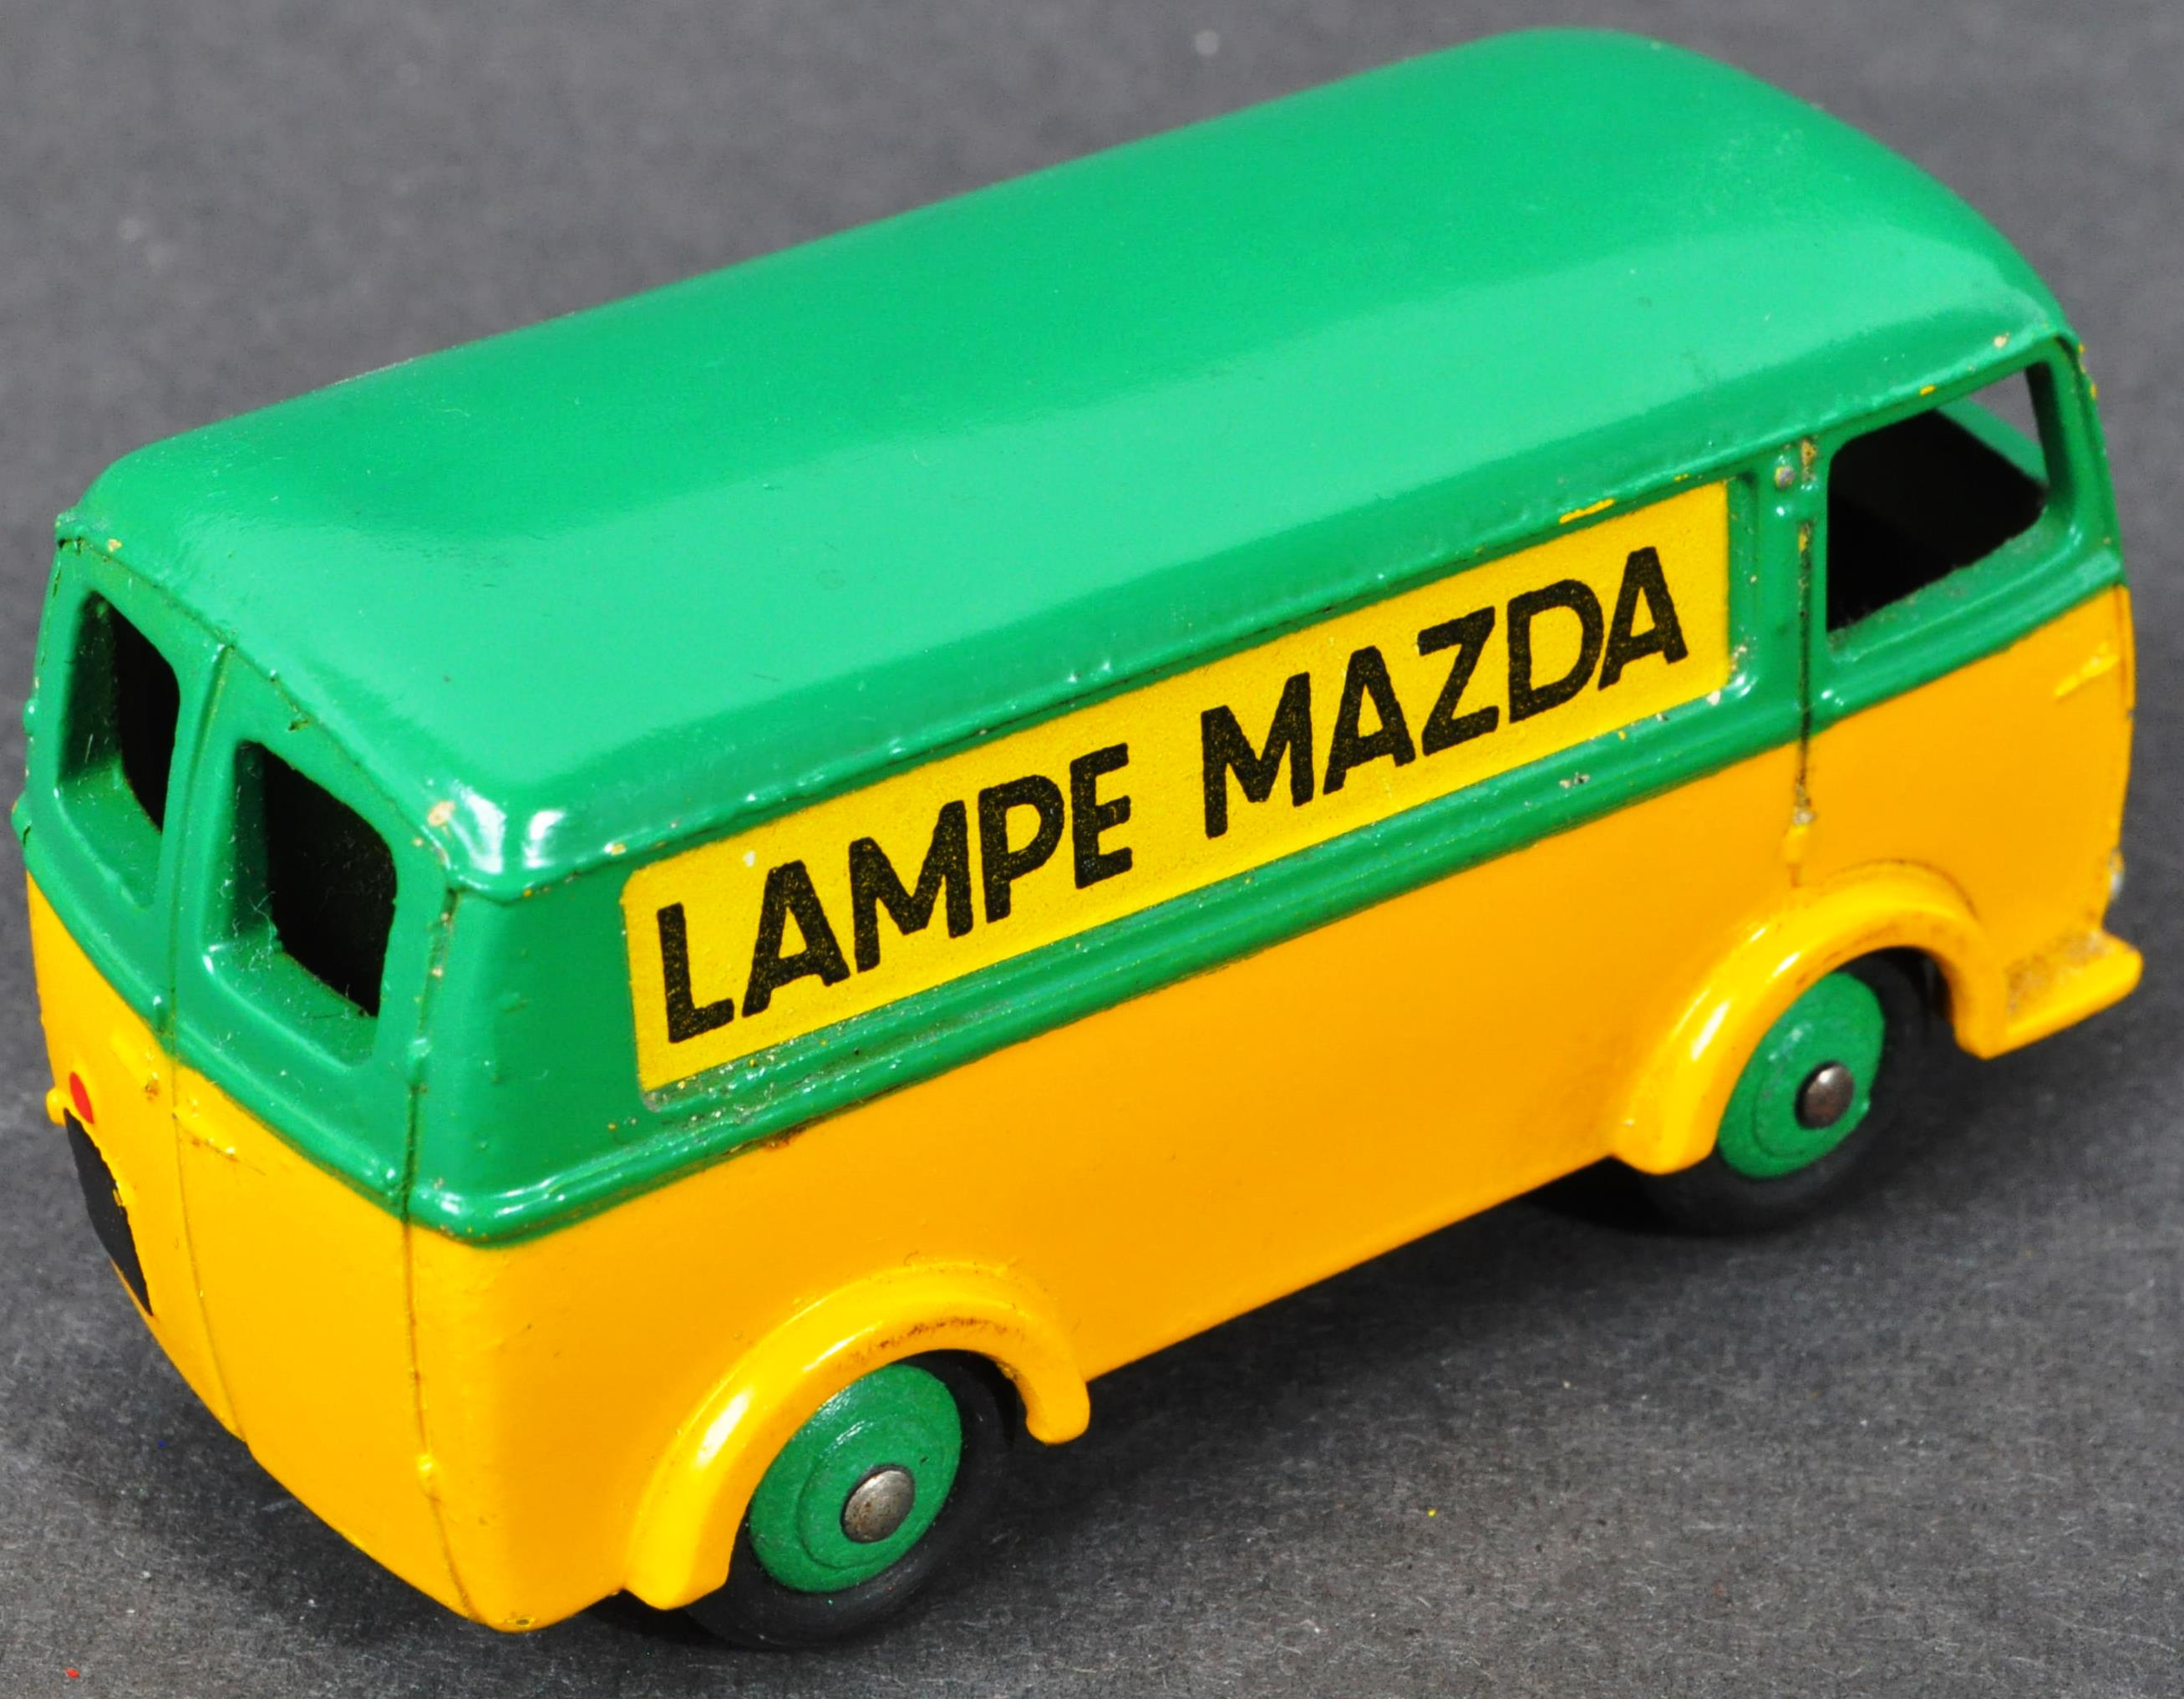 FRENCH DINKY TOYS - ORIGINAL BOXED VINTAGE DIECAST MODEL - Image 3 of 4